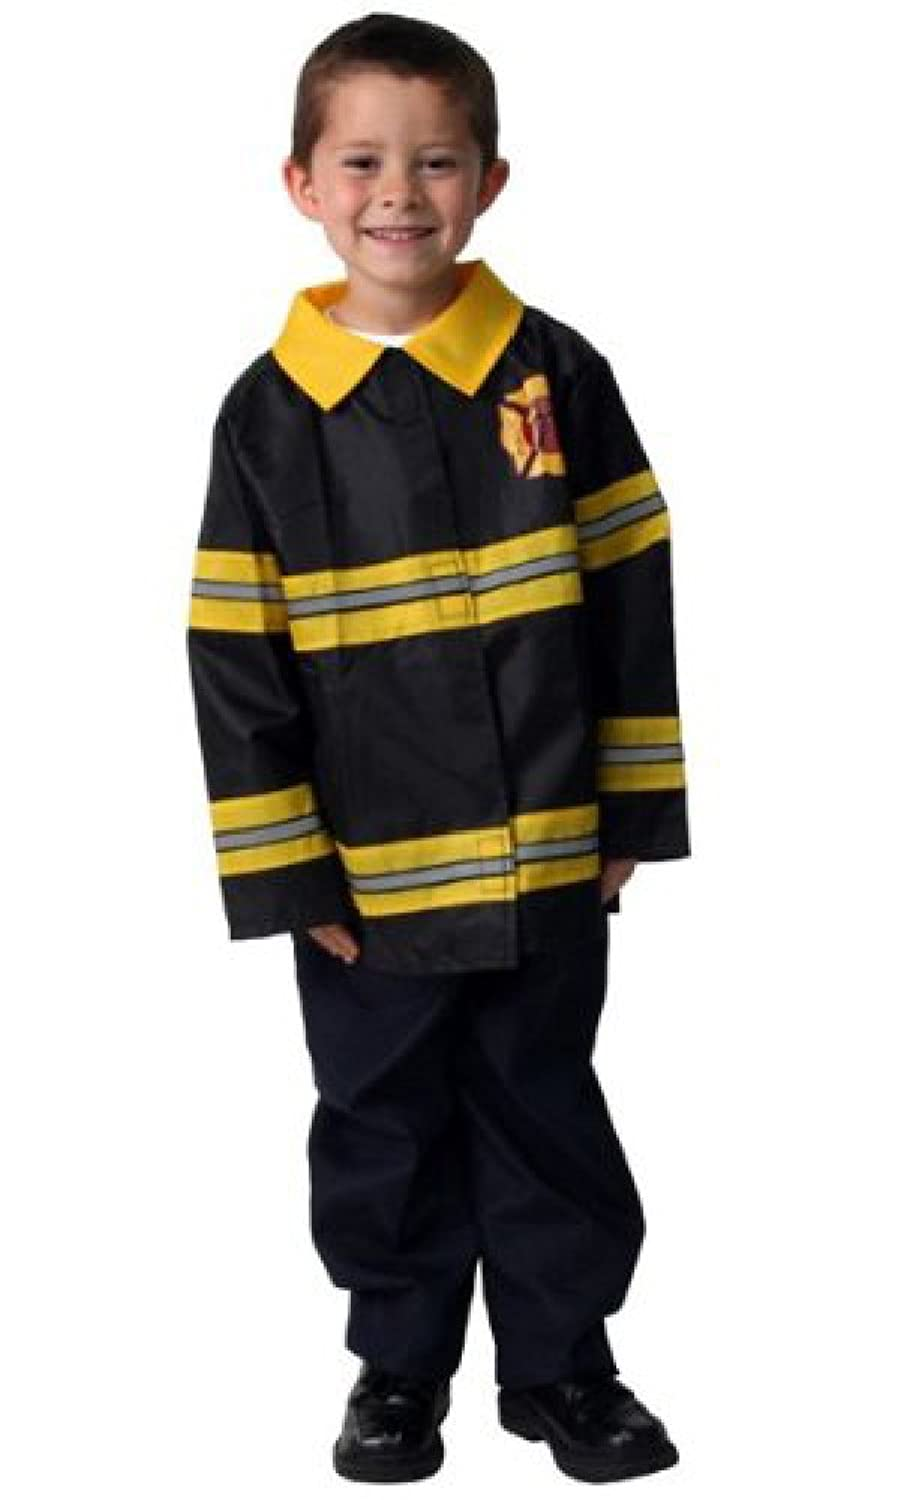 amazoncom fireman fire fighter dressup halloween costume choose size clothing - Fireman Halloween